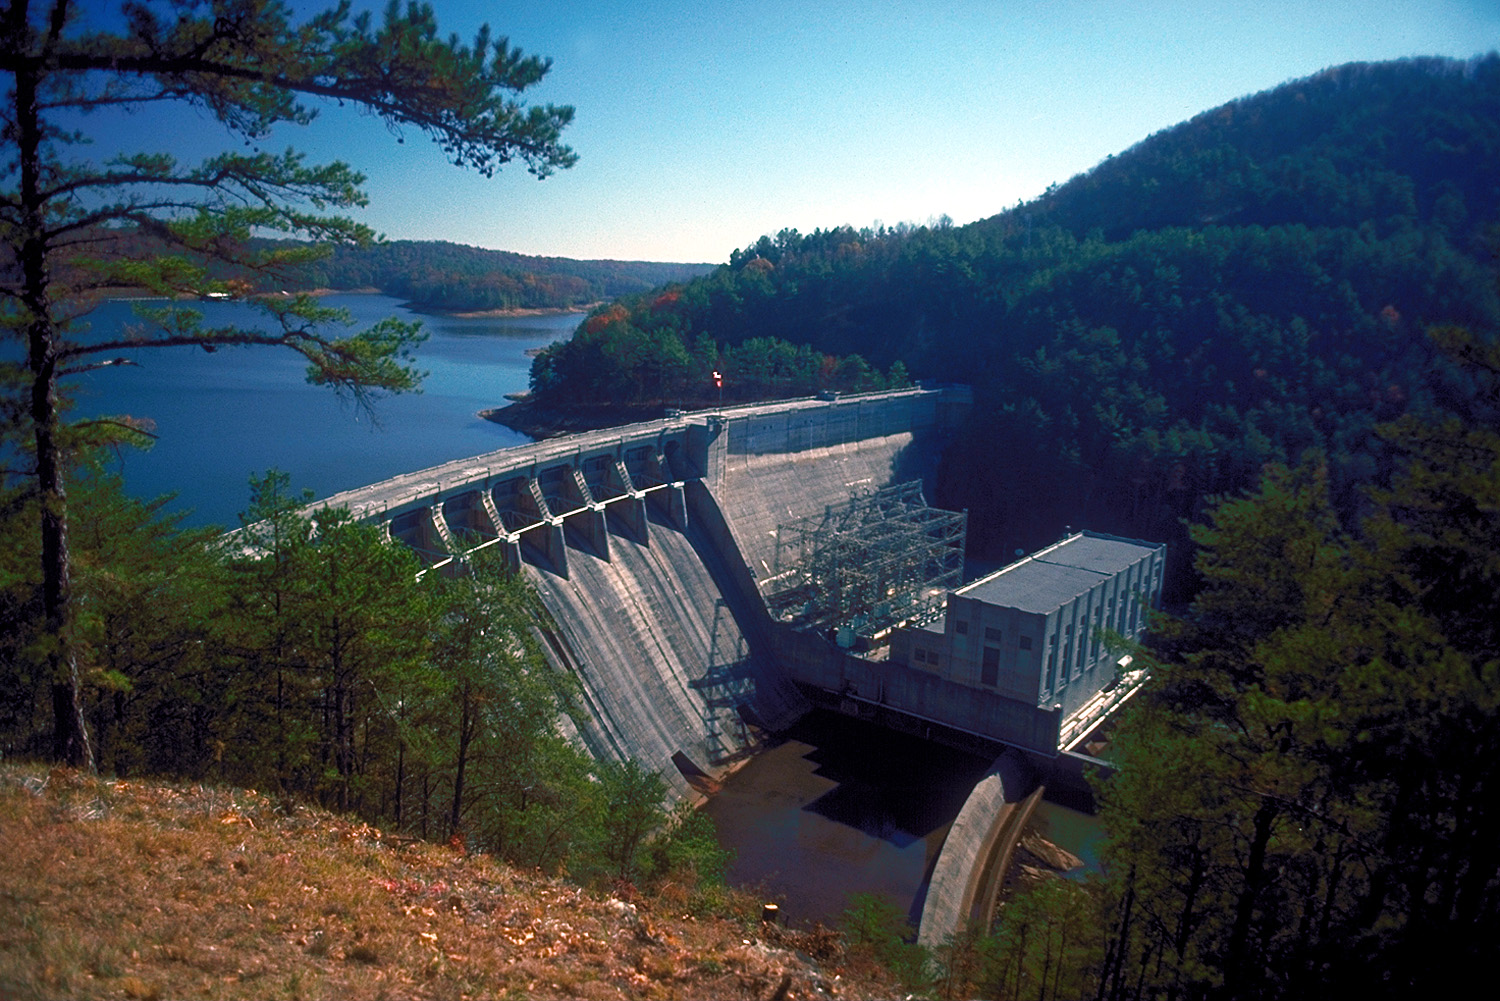 File:USACE Allatoona Dam and Lake.jpg - Wikimedia Commons